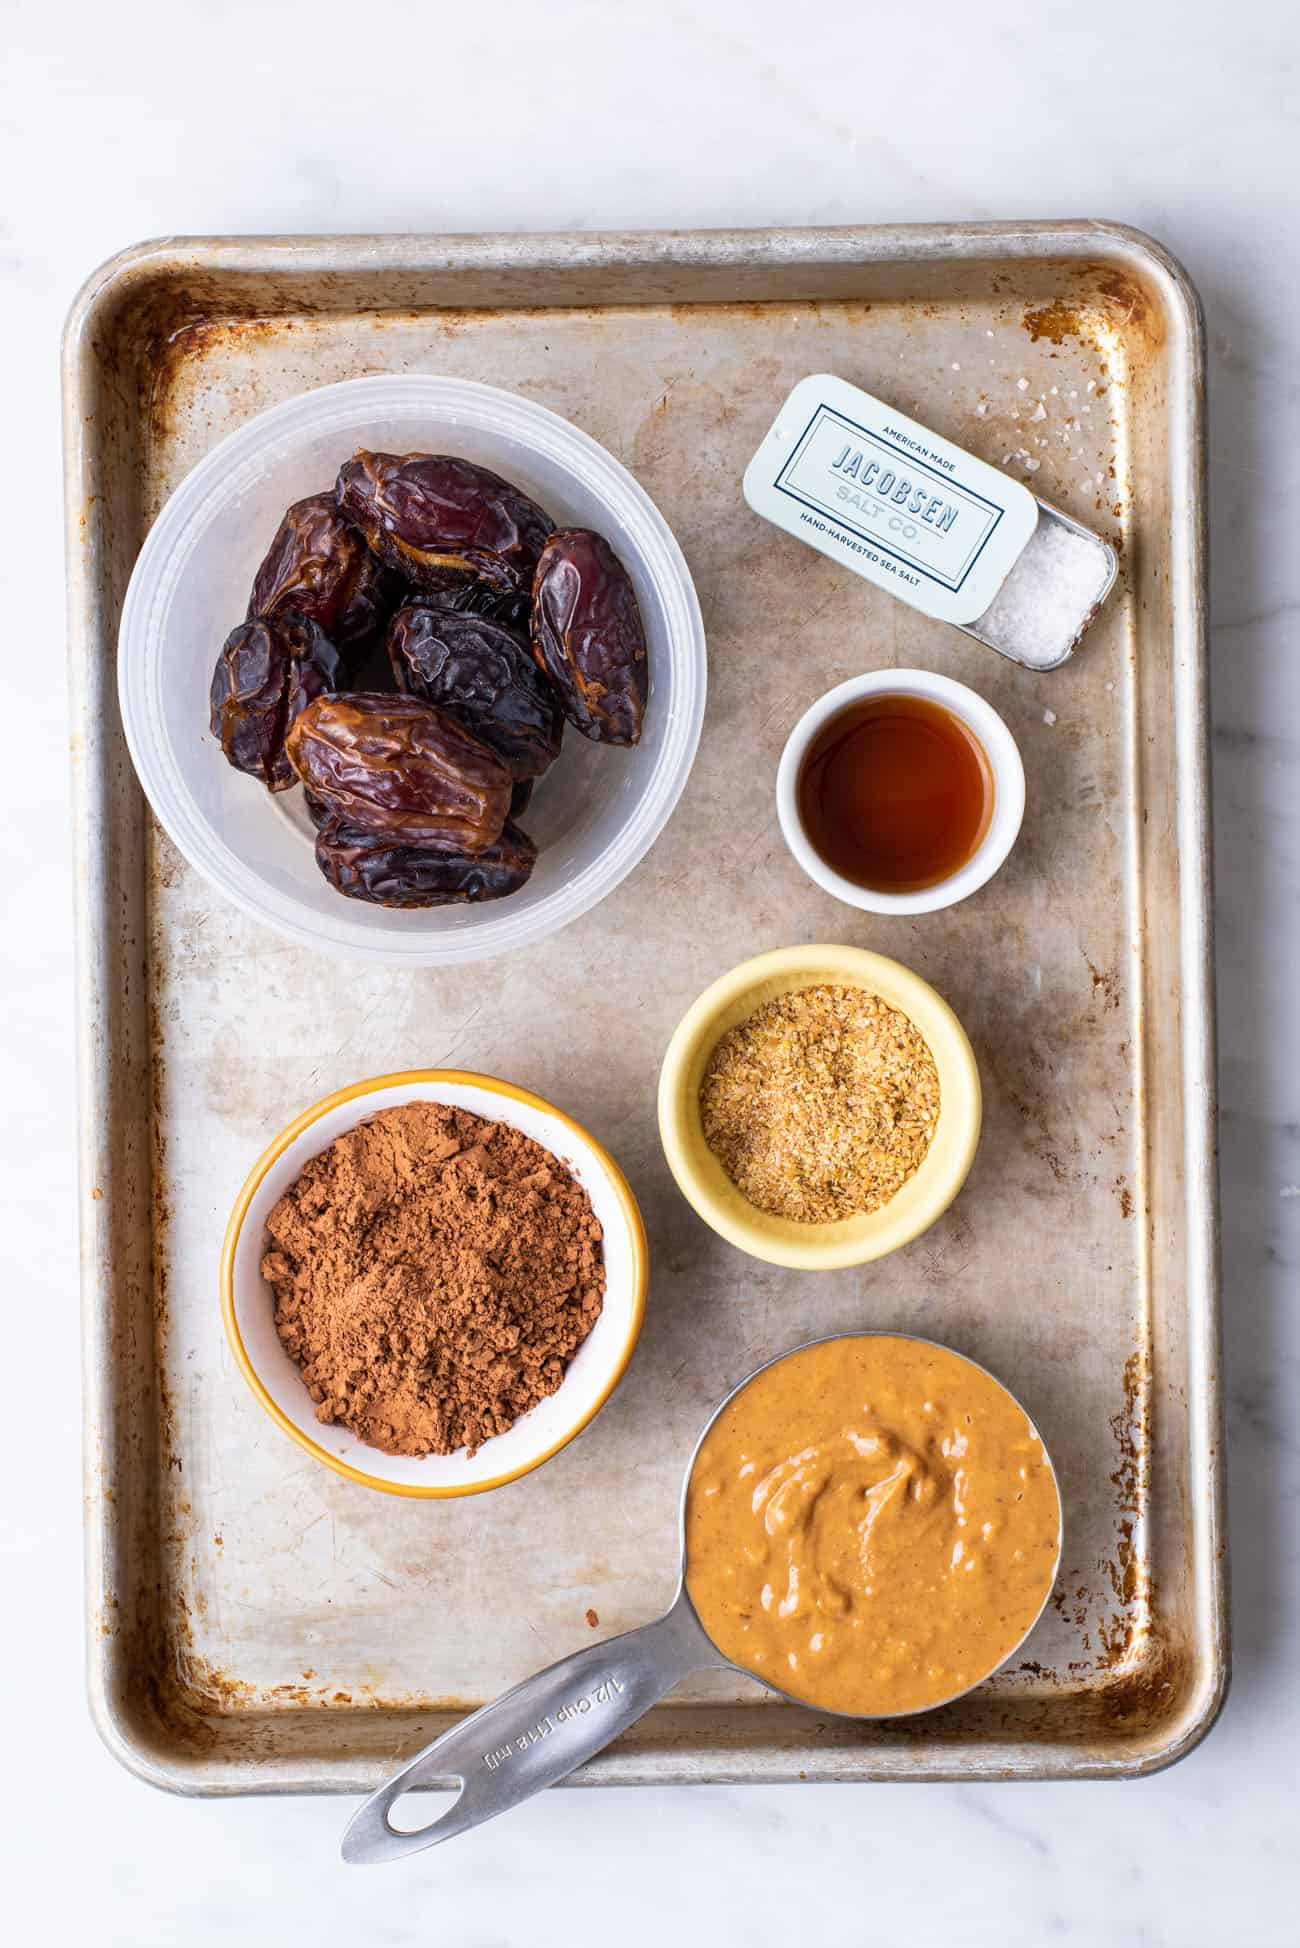 Medjool dates, cocoa powder, peanut butter, flax, and vanilla - gathered on a metal tray